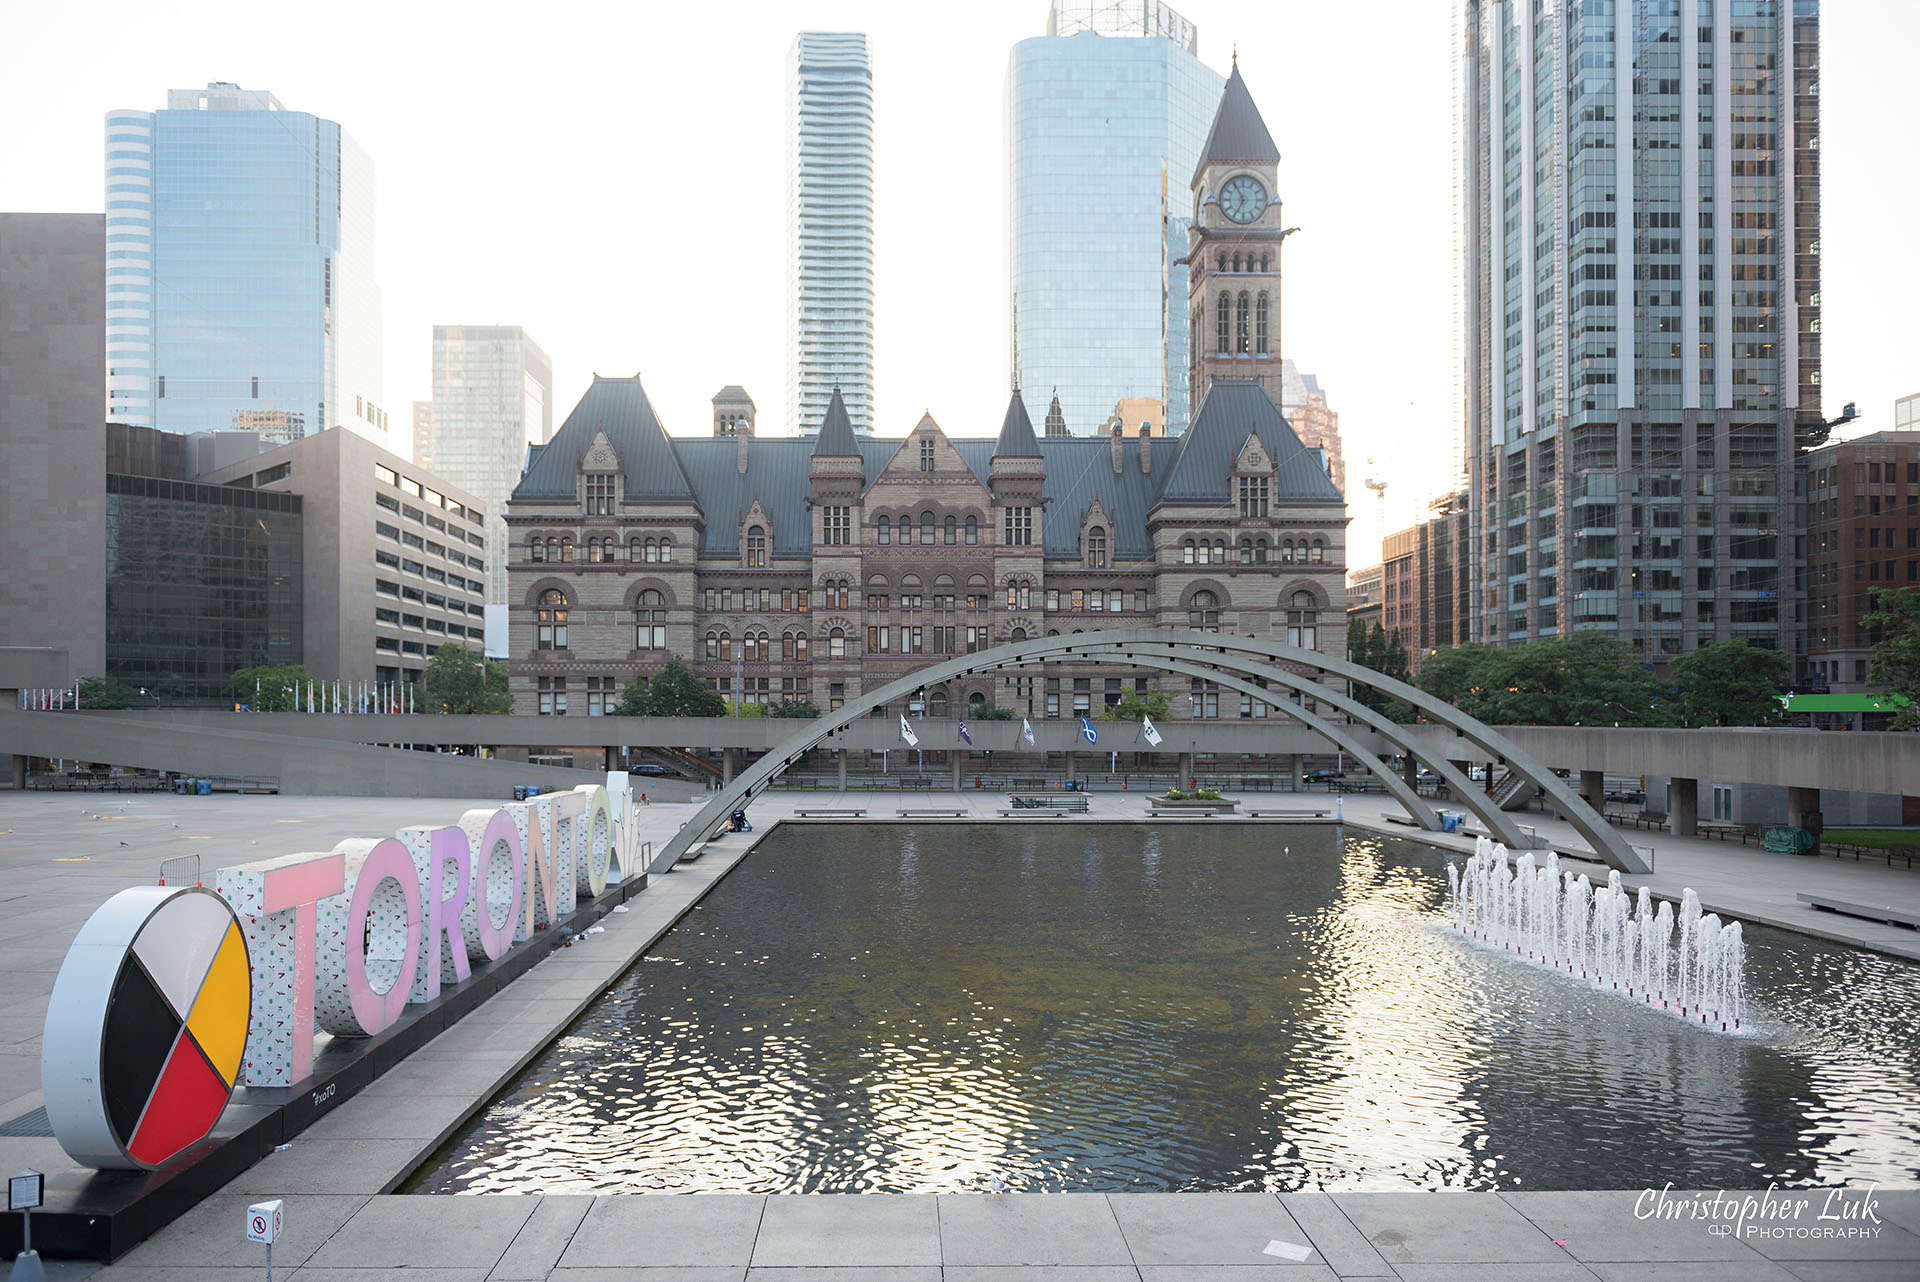 Christopher Luk Wedding Photographer Old Toronto City Hall Nathan Philips Square Elevated Bridge Arches Archway Wide Landscape Toronto 3D Sign Water Pool Fountain Feature